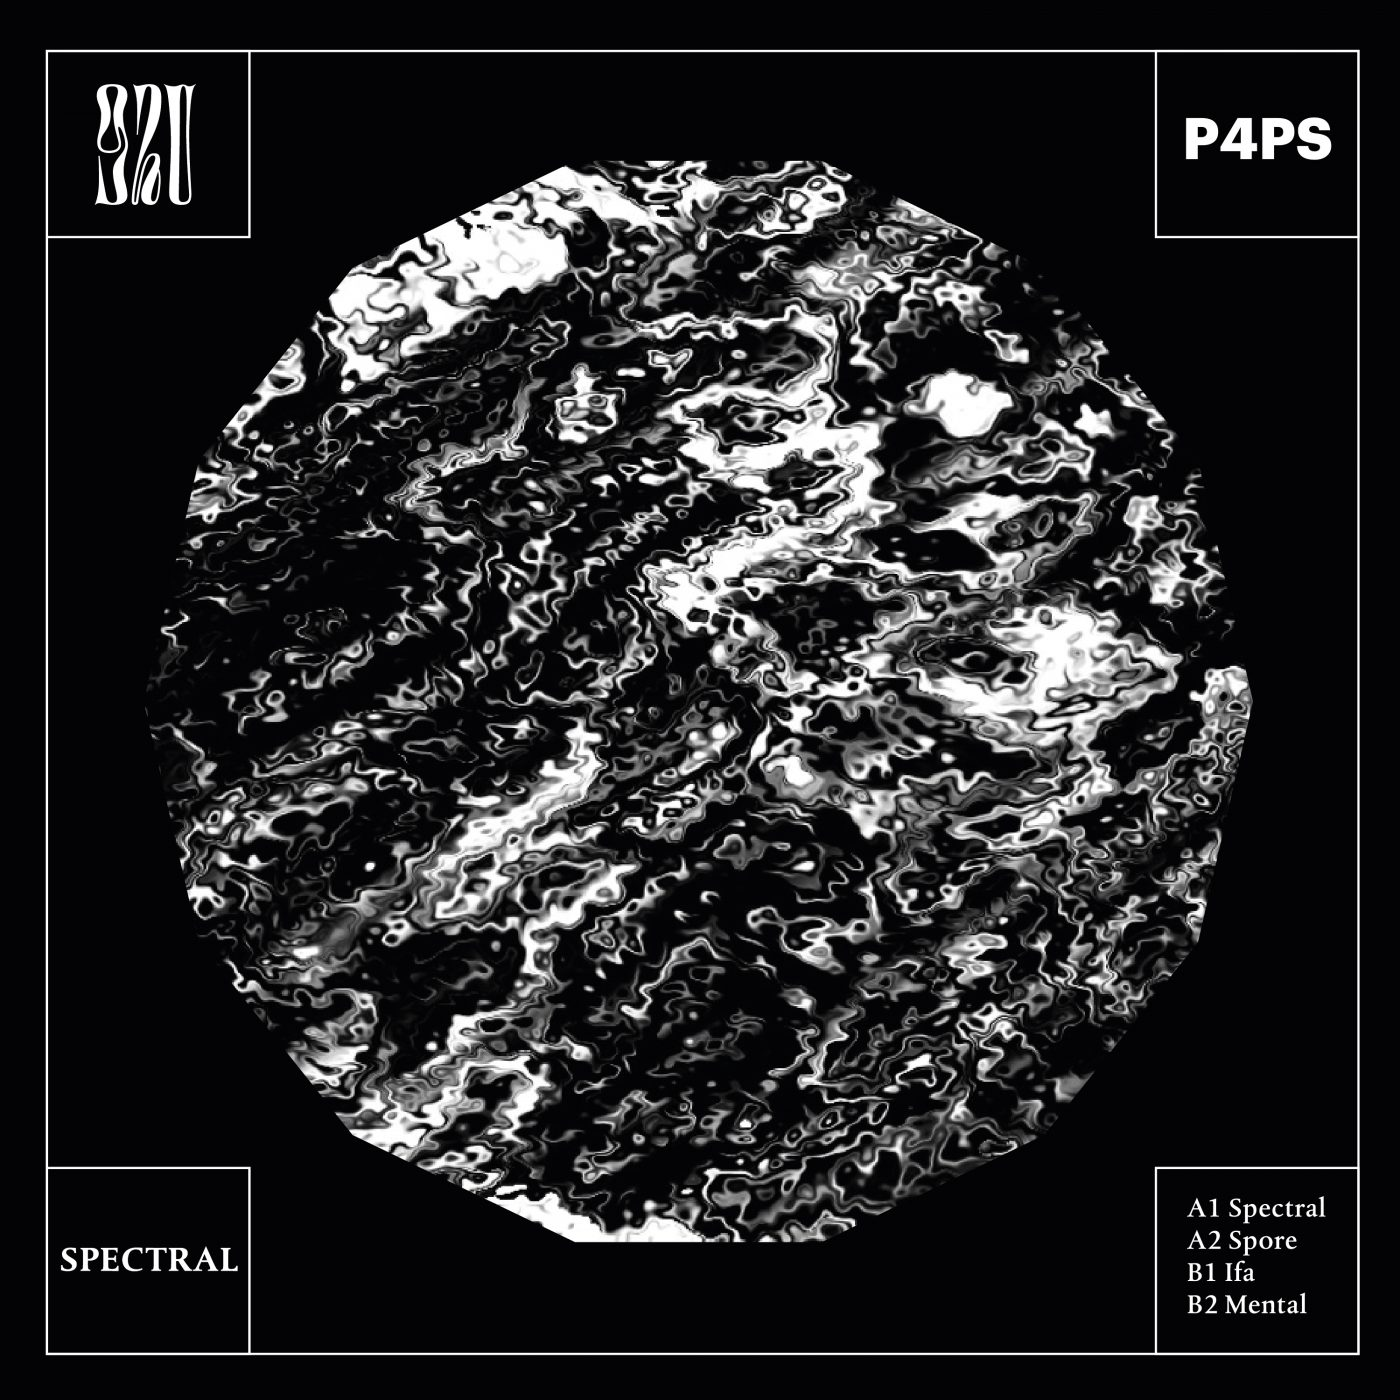 P4PS - Spectral [92U Records]